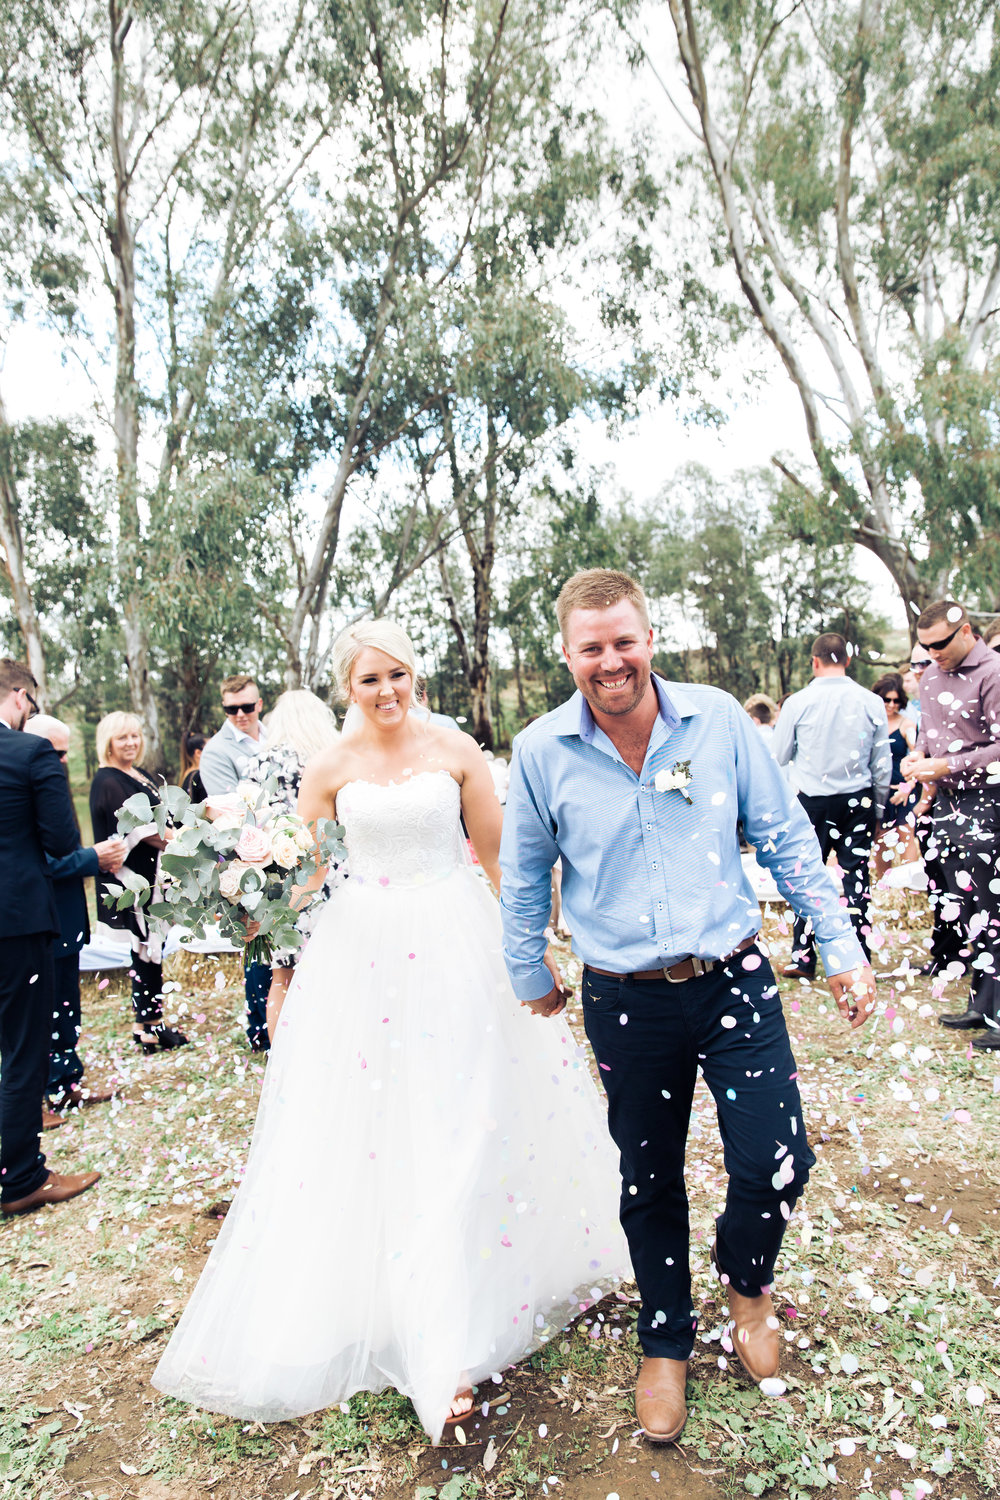 00021- Fine Art Film Dubbo NSW Wedding Photographer Sheri McMahon.jpg